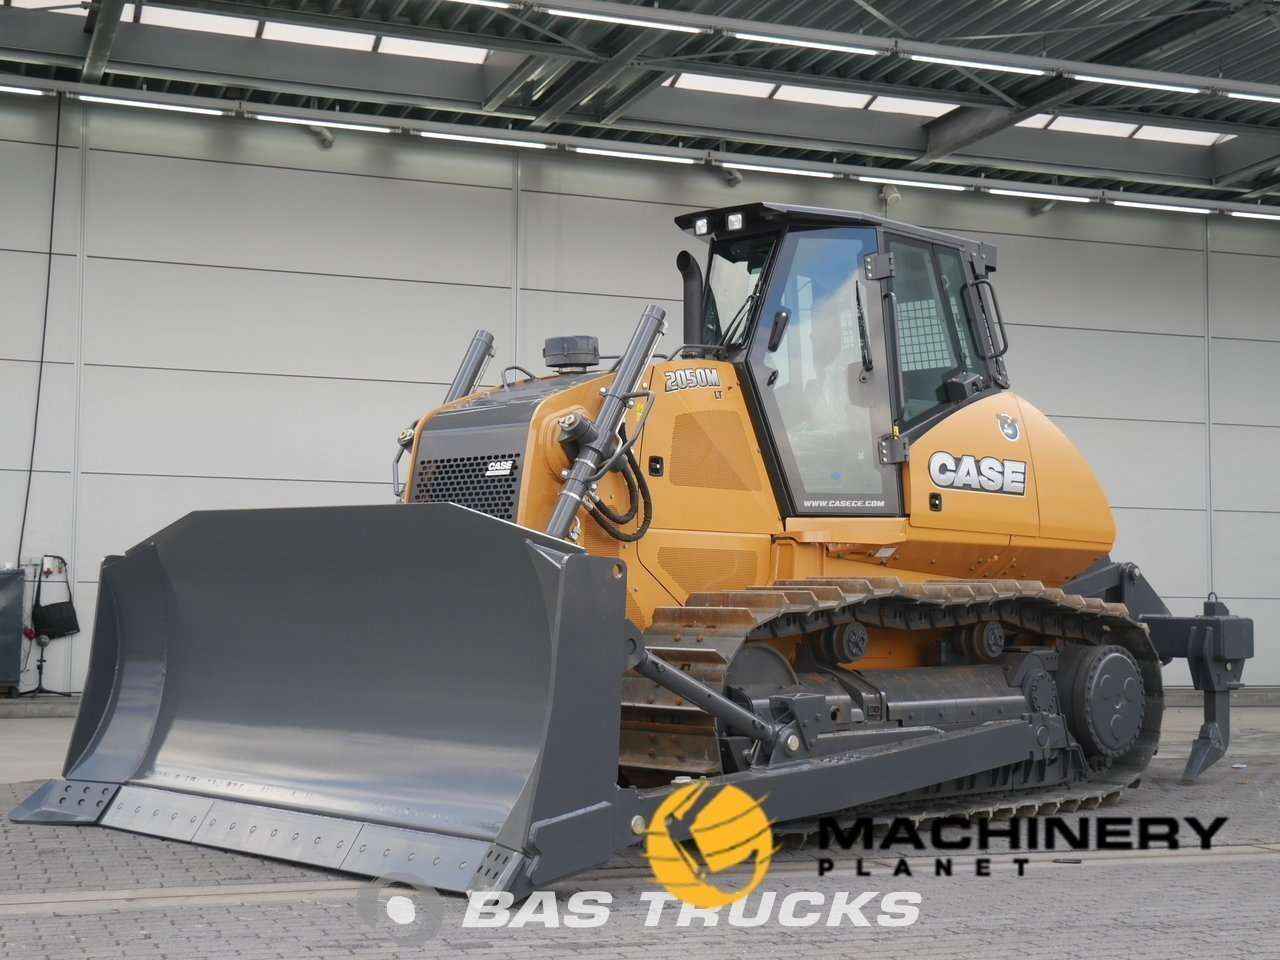 Used-Construction-equipment-Case-2050M-LT-Track-2015_134748_1-1554202444533_5ca33f4c8216a-1.jpg